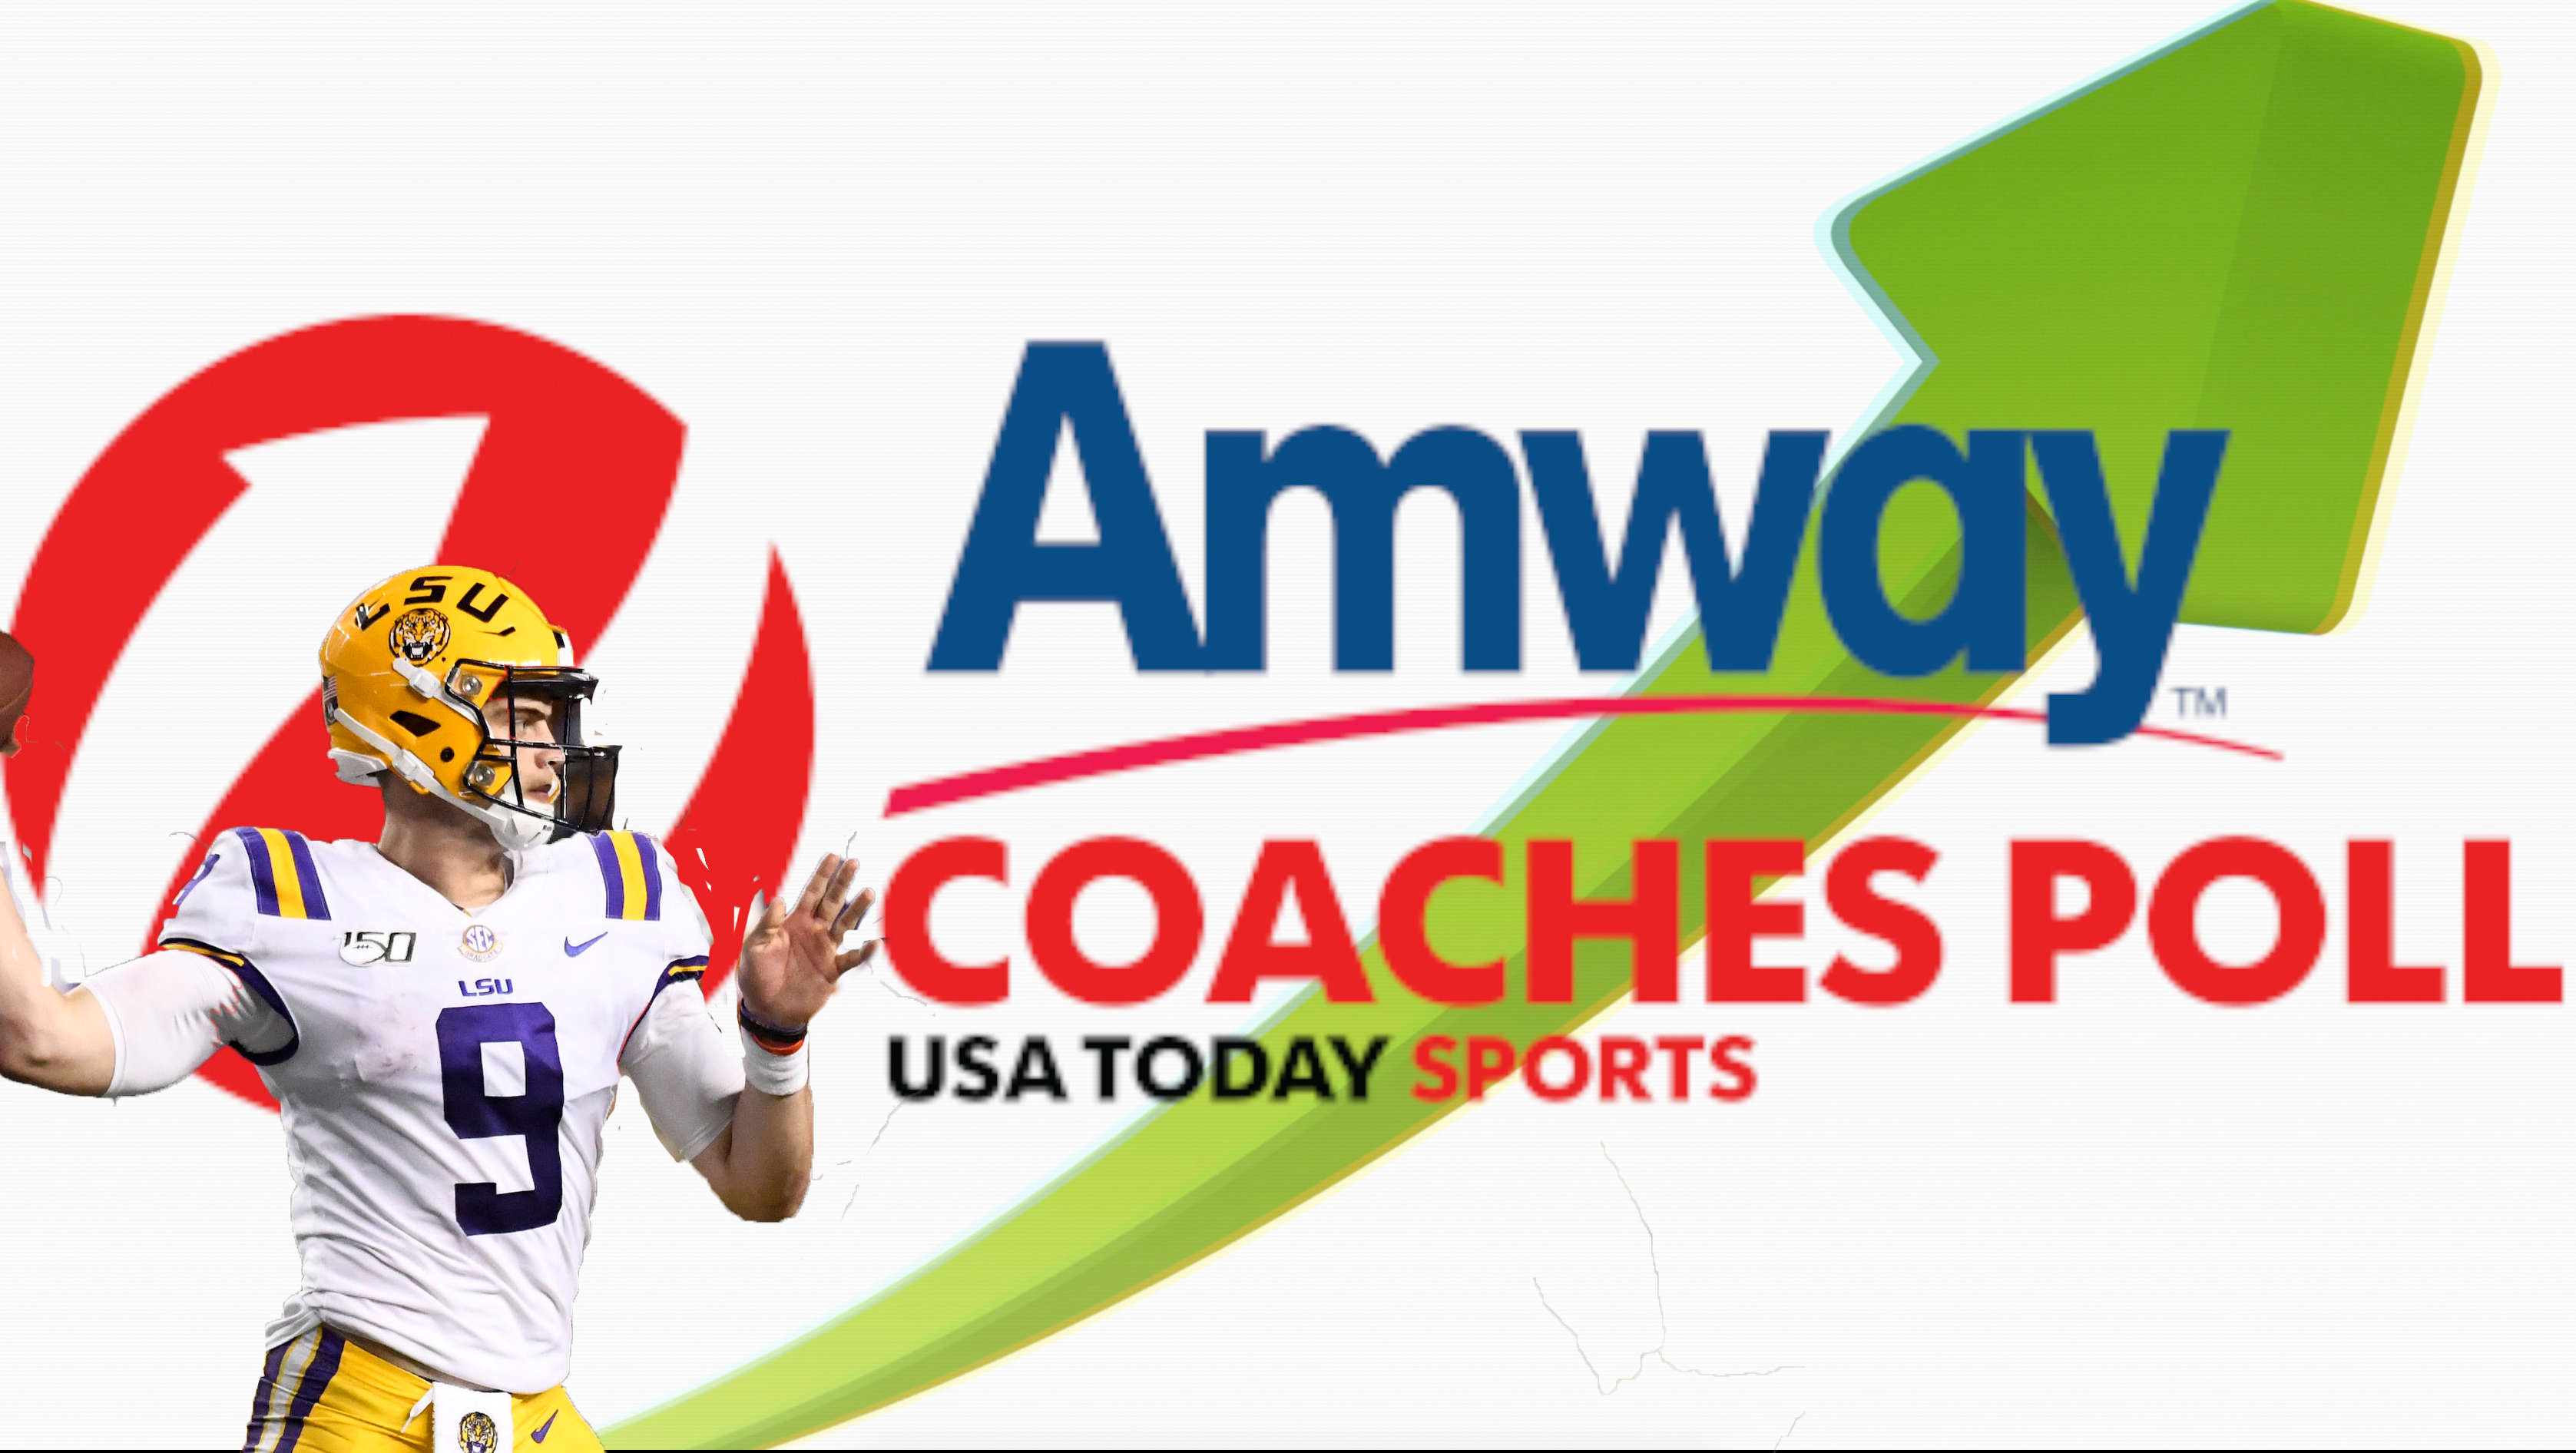 LSU jumps into top five of Amway Coaches Poll after win